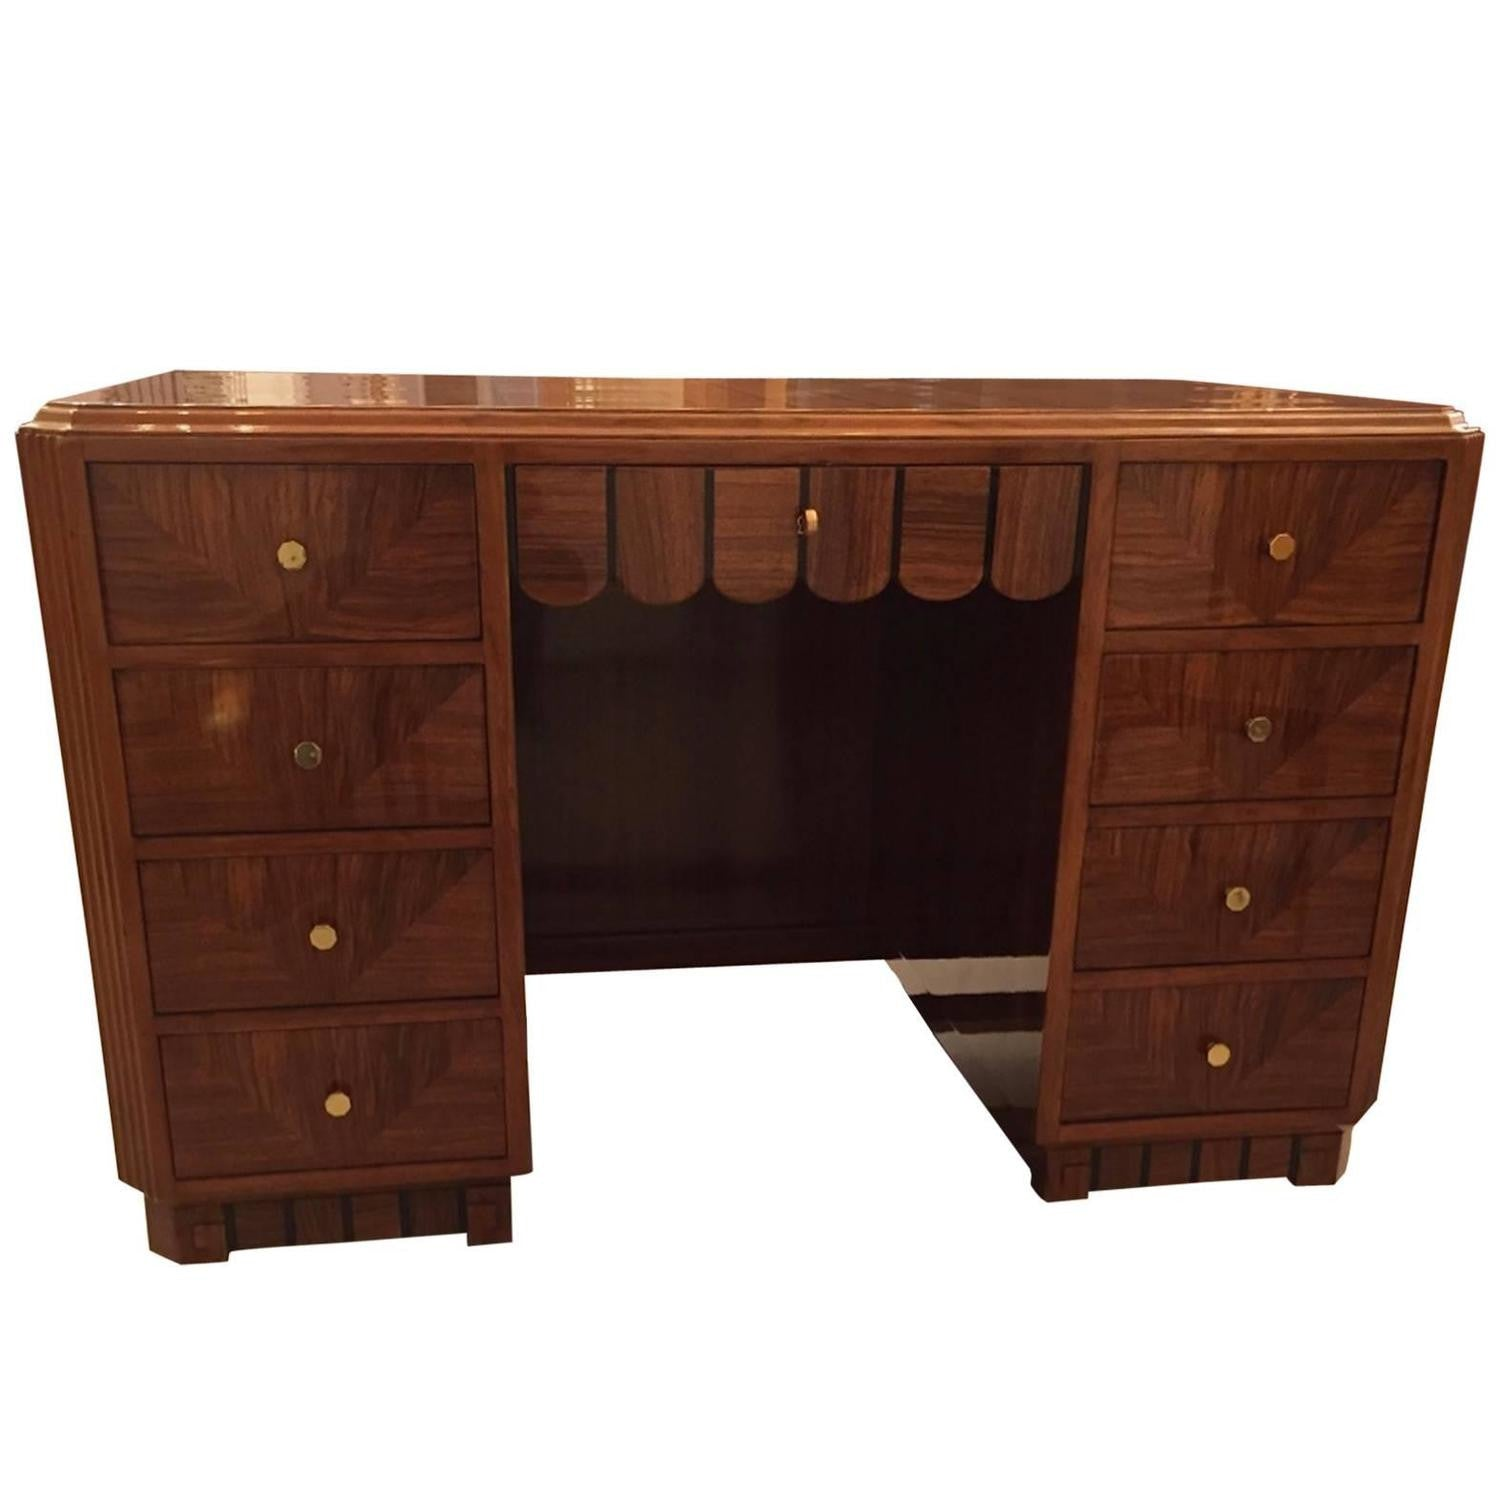 macassar ebonized important desk modernism and desks an items art furniture deco wood french ebony tables